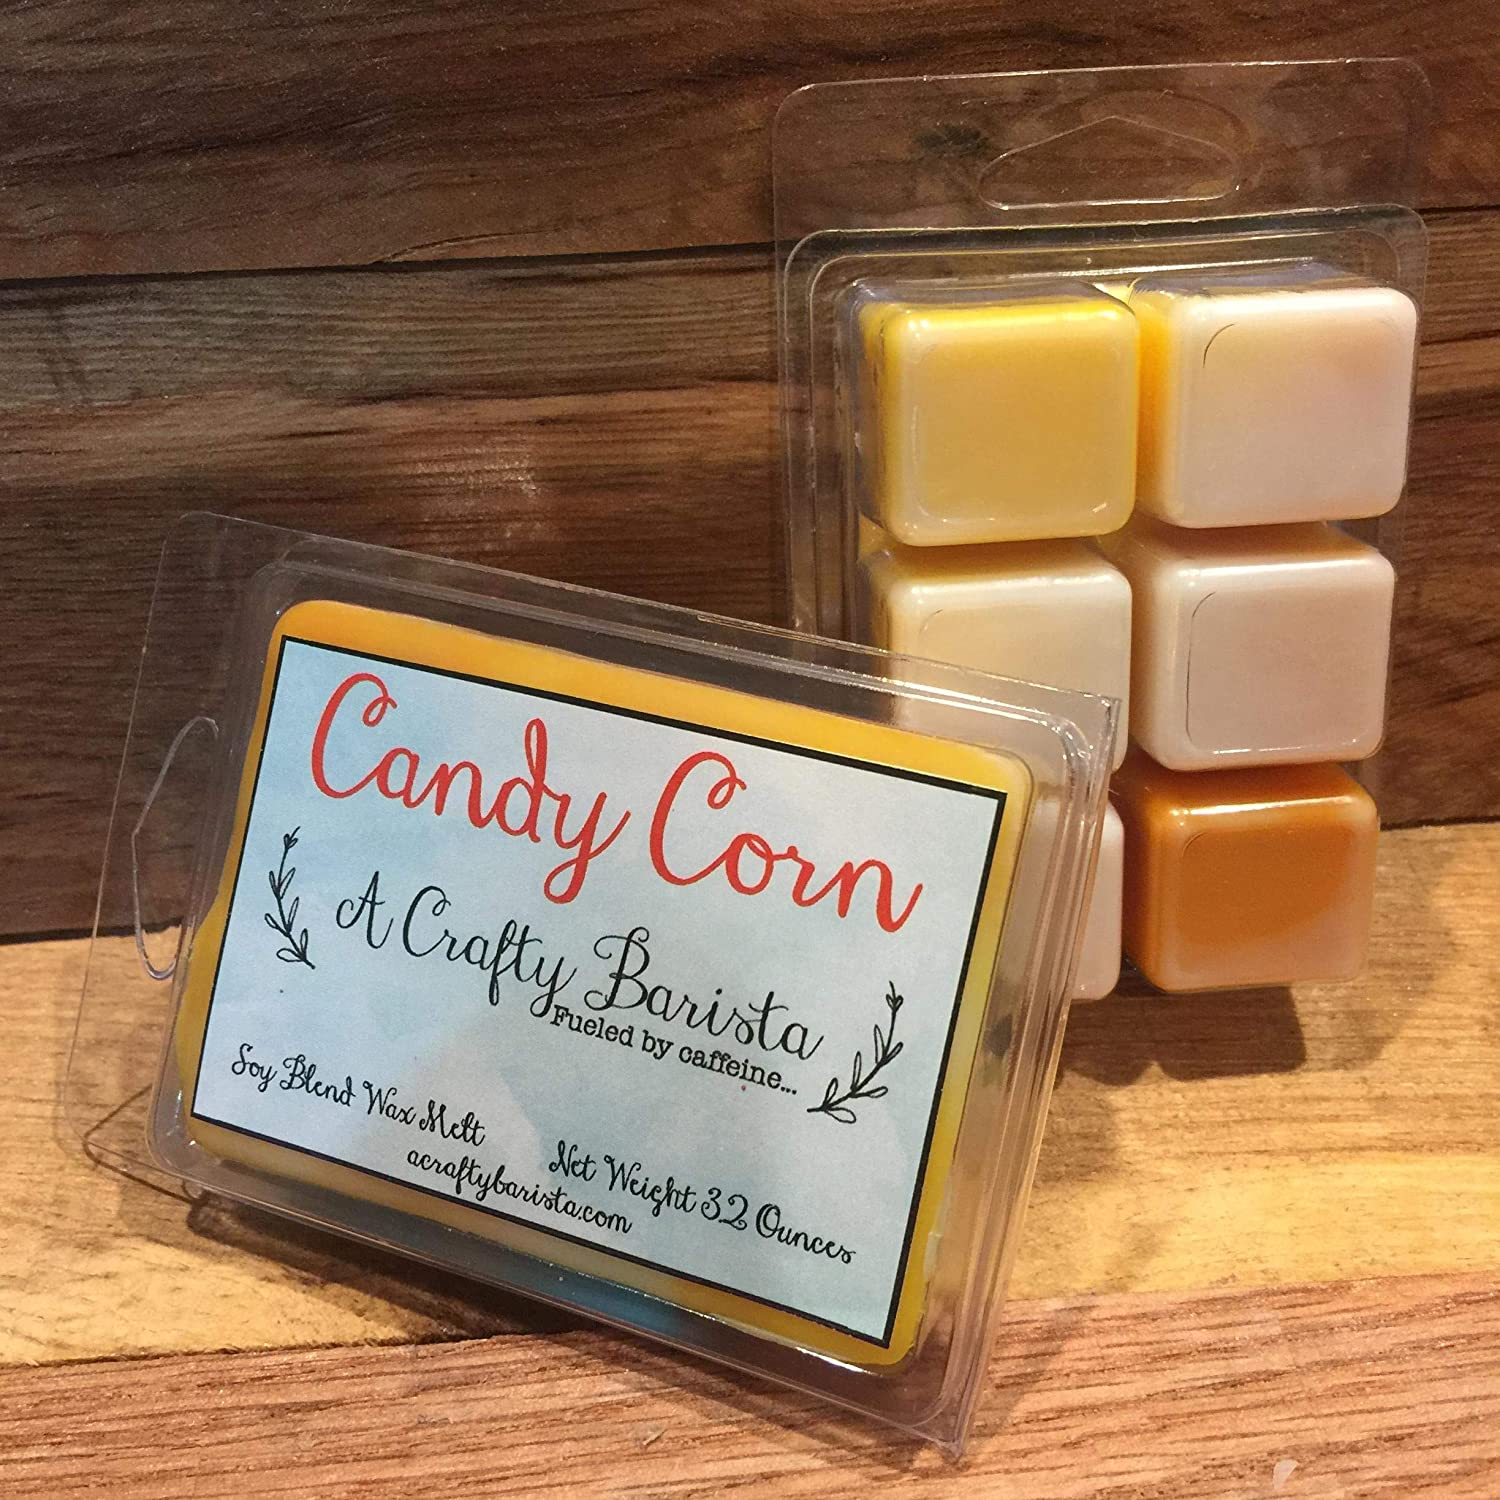 Halloween Candy Corn Scented Wax Melts, 3.2 Ounces